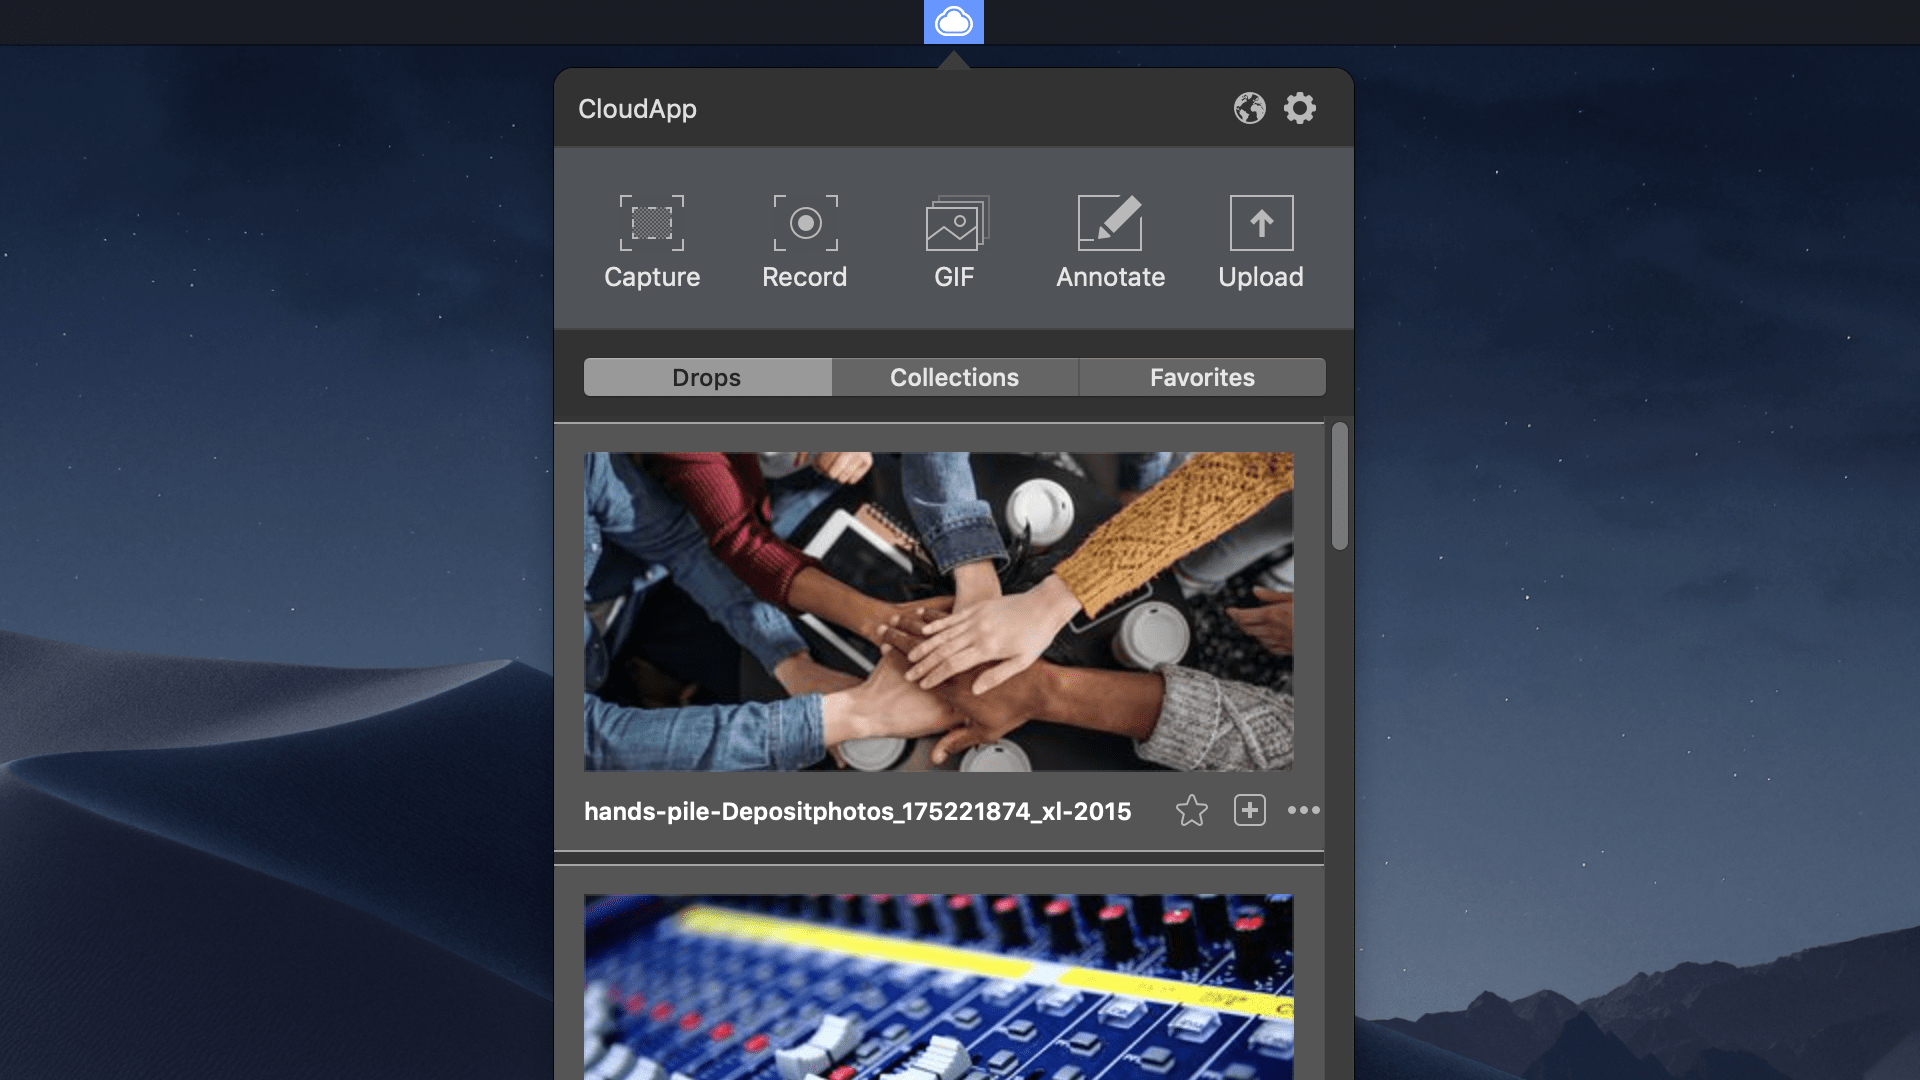 CloudApp - screen capture and recorder for storing, annotating, and sharing